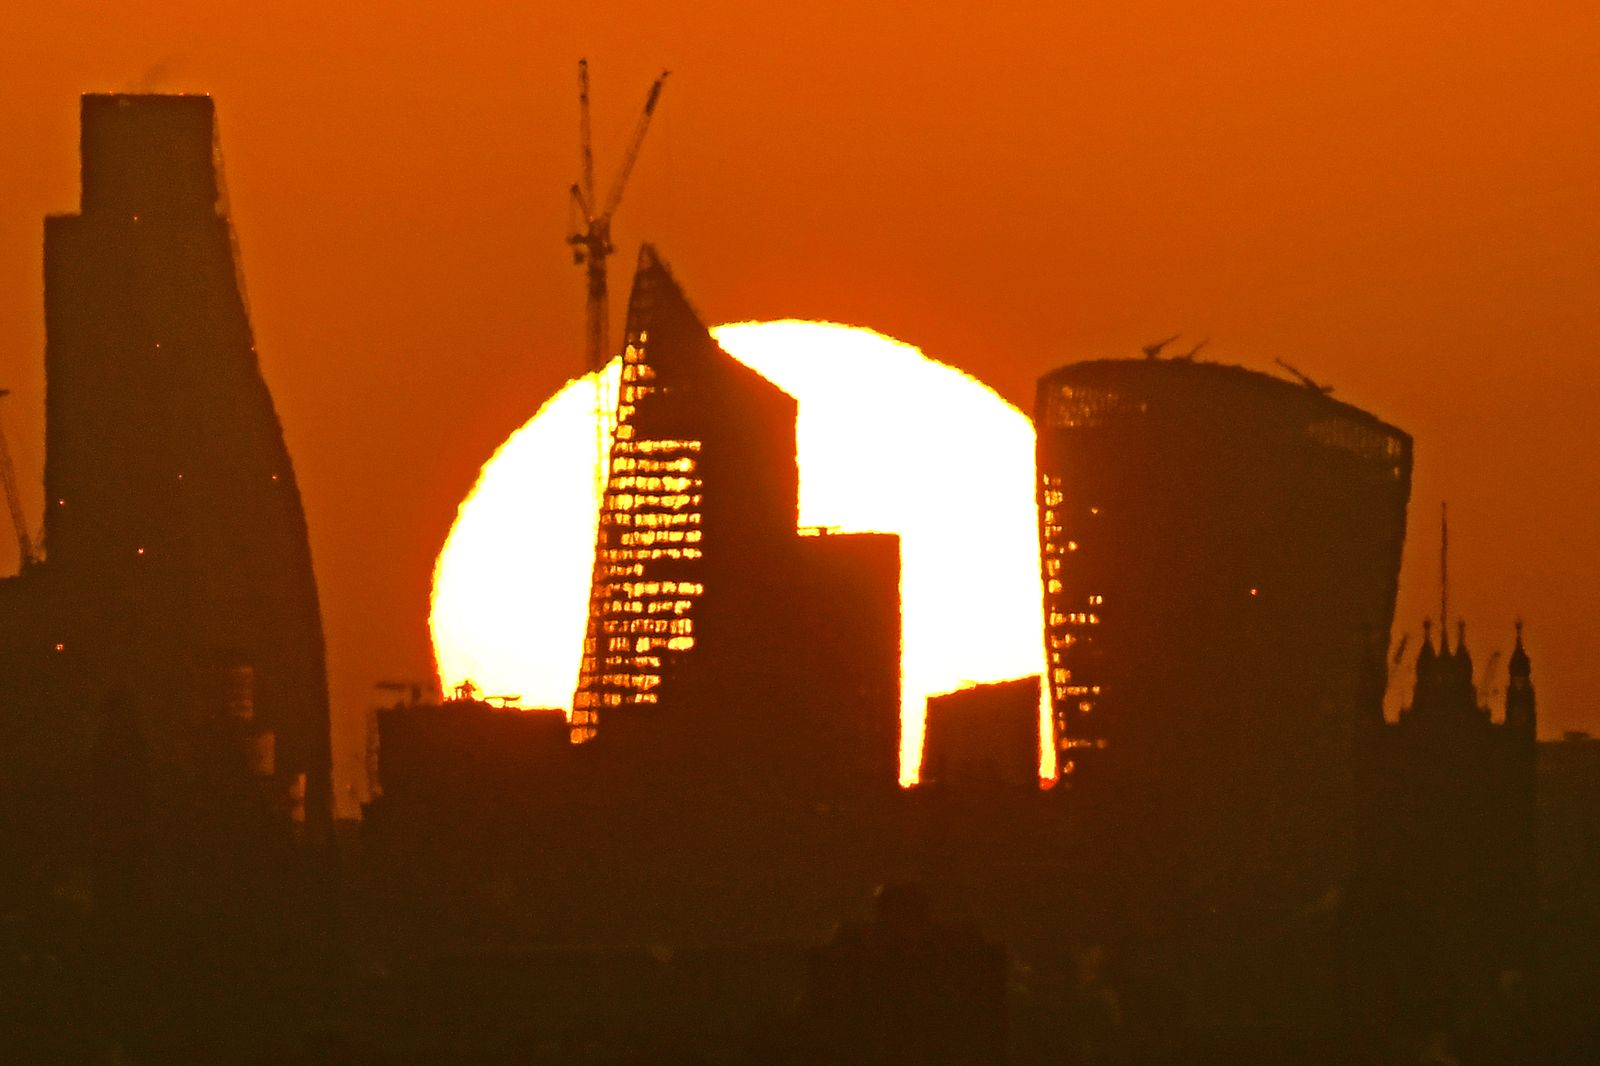 The sun is seen rising over skyscrapers in the City of London financial district in London